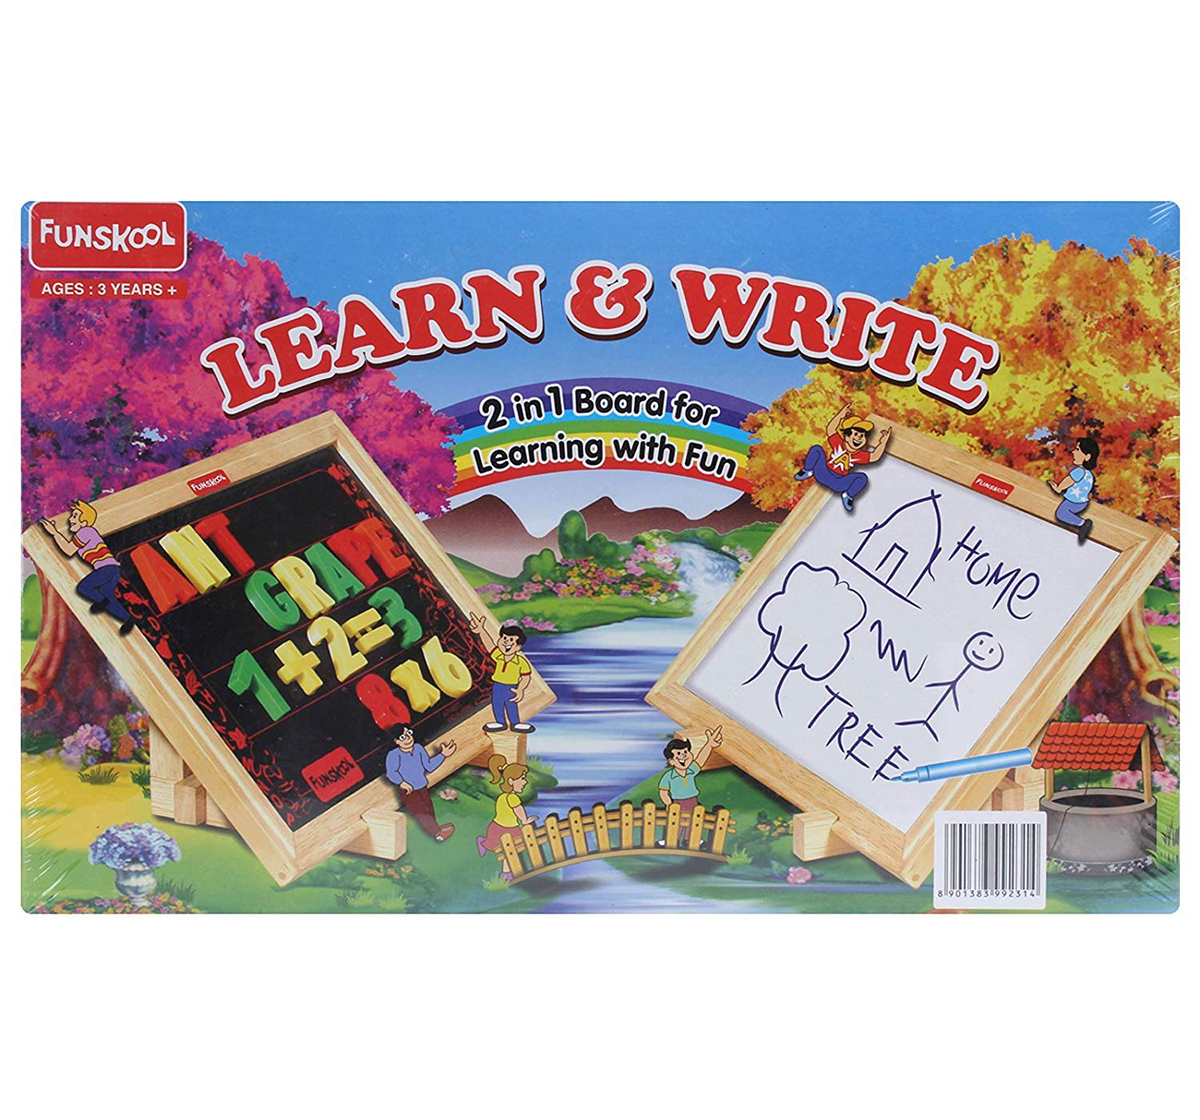 Giggles | Giggles Funskool Learn And Write Early Learner Toys for Kids age 3Y+ (White)